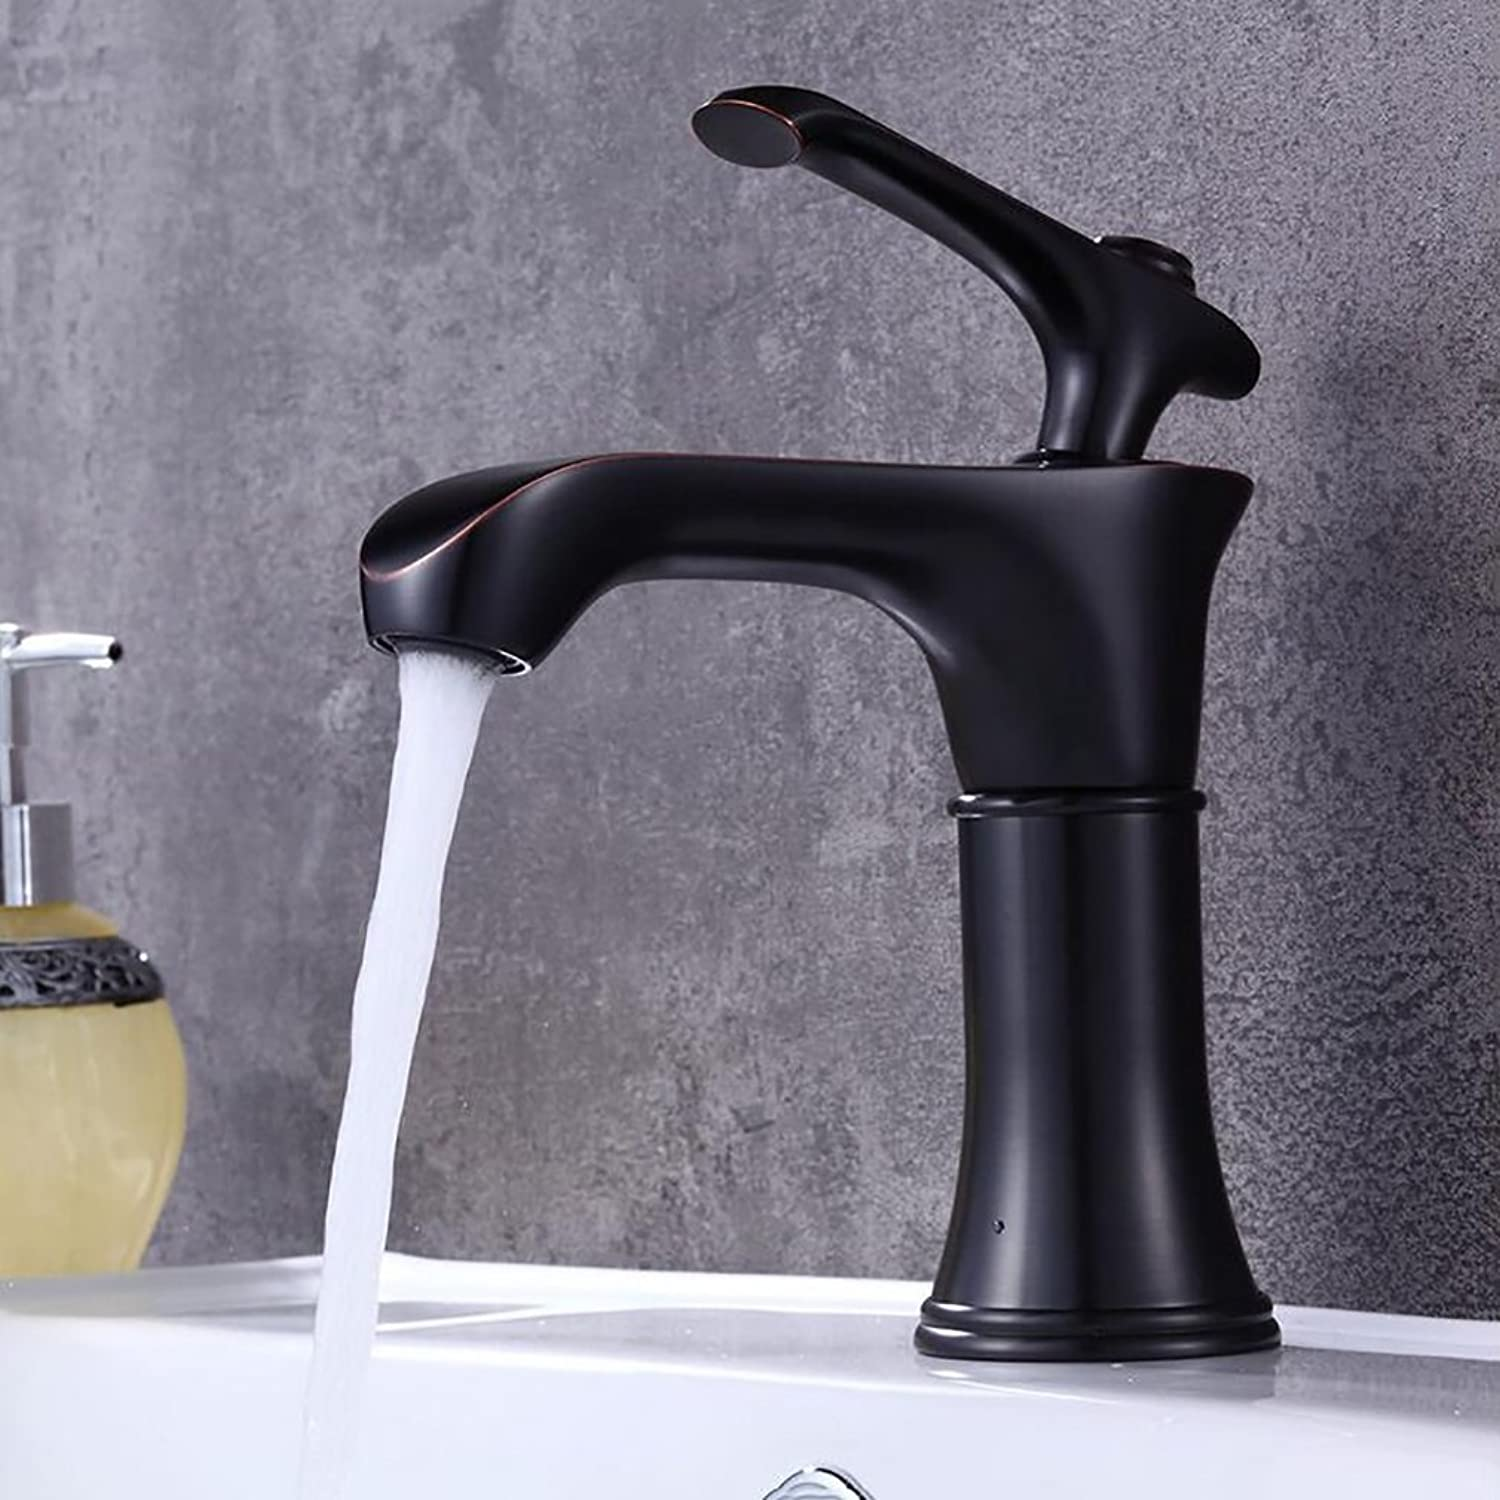 Bathroom accessories, easy to use and user-friendl Bathroom Taps,black Basin Faucet,Hotel Hot And Cold Mixer,Retro Single Hole Creative Tap XIAHE